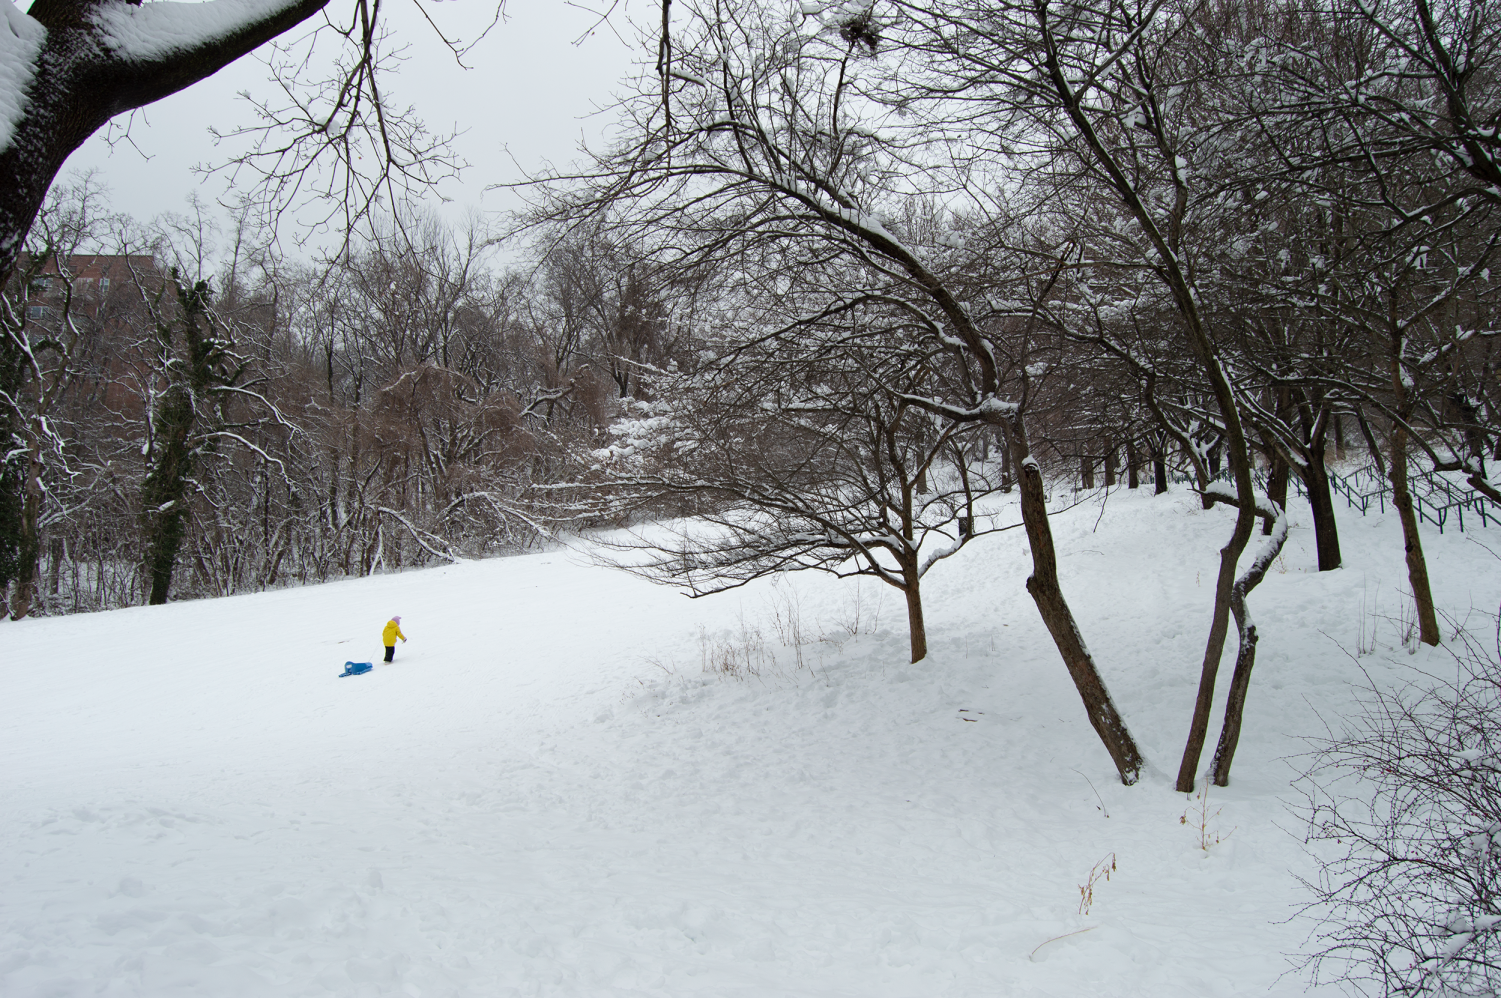 a child drags a sled up a snowy hill in the park